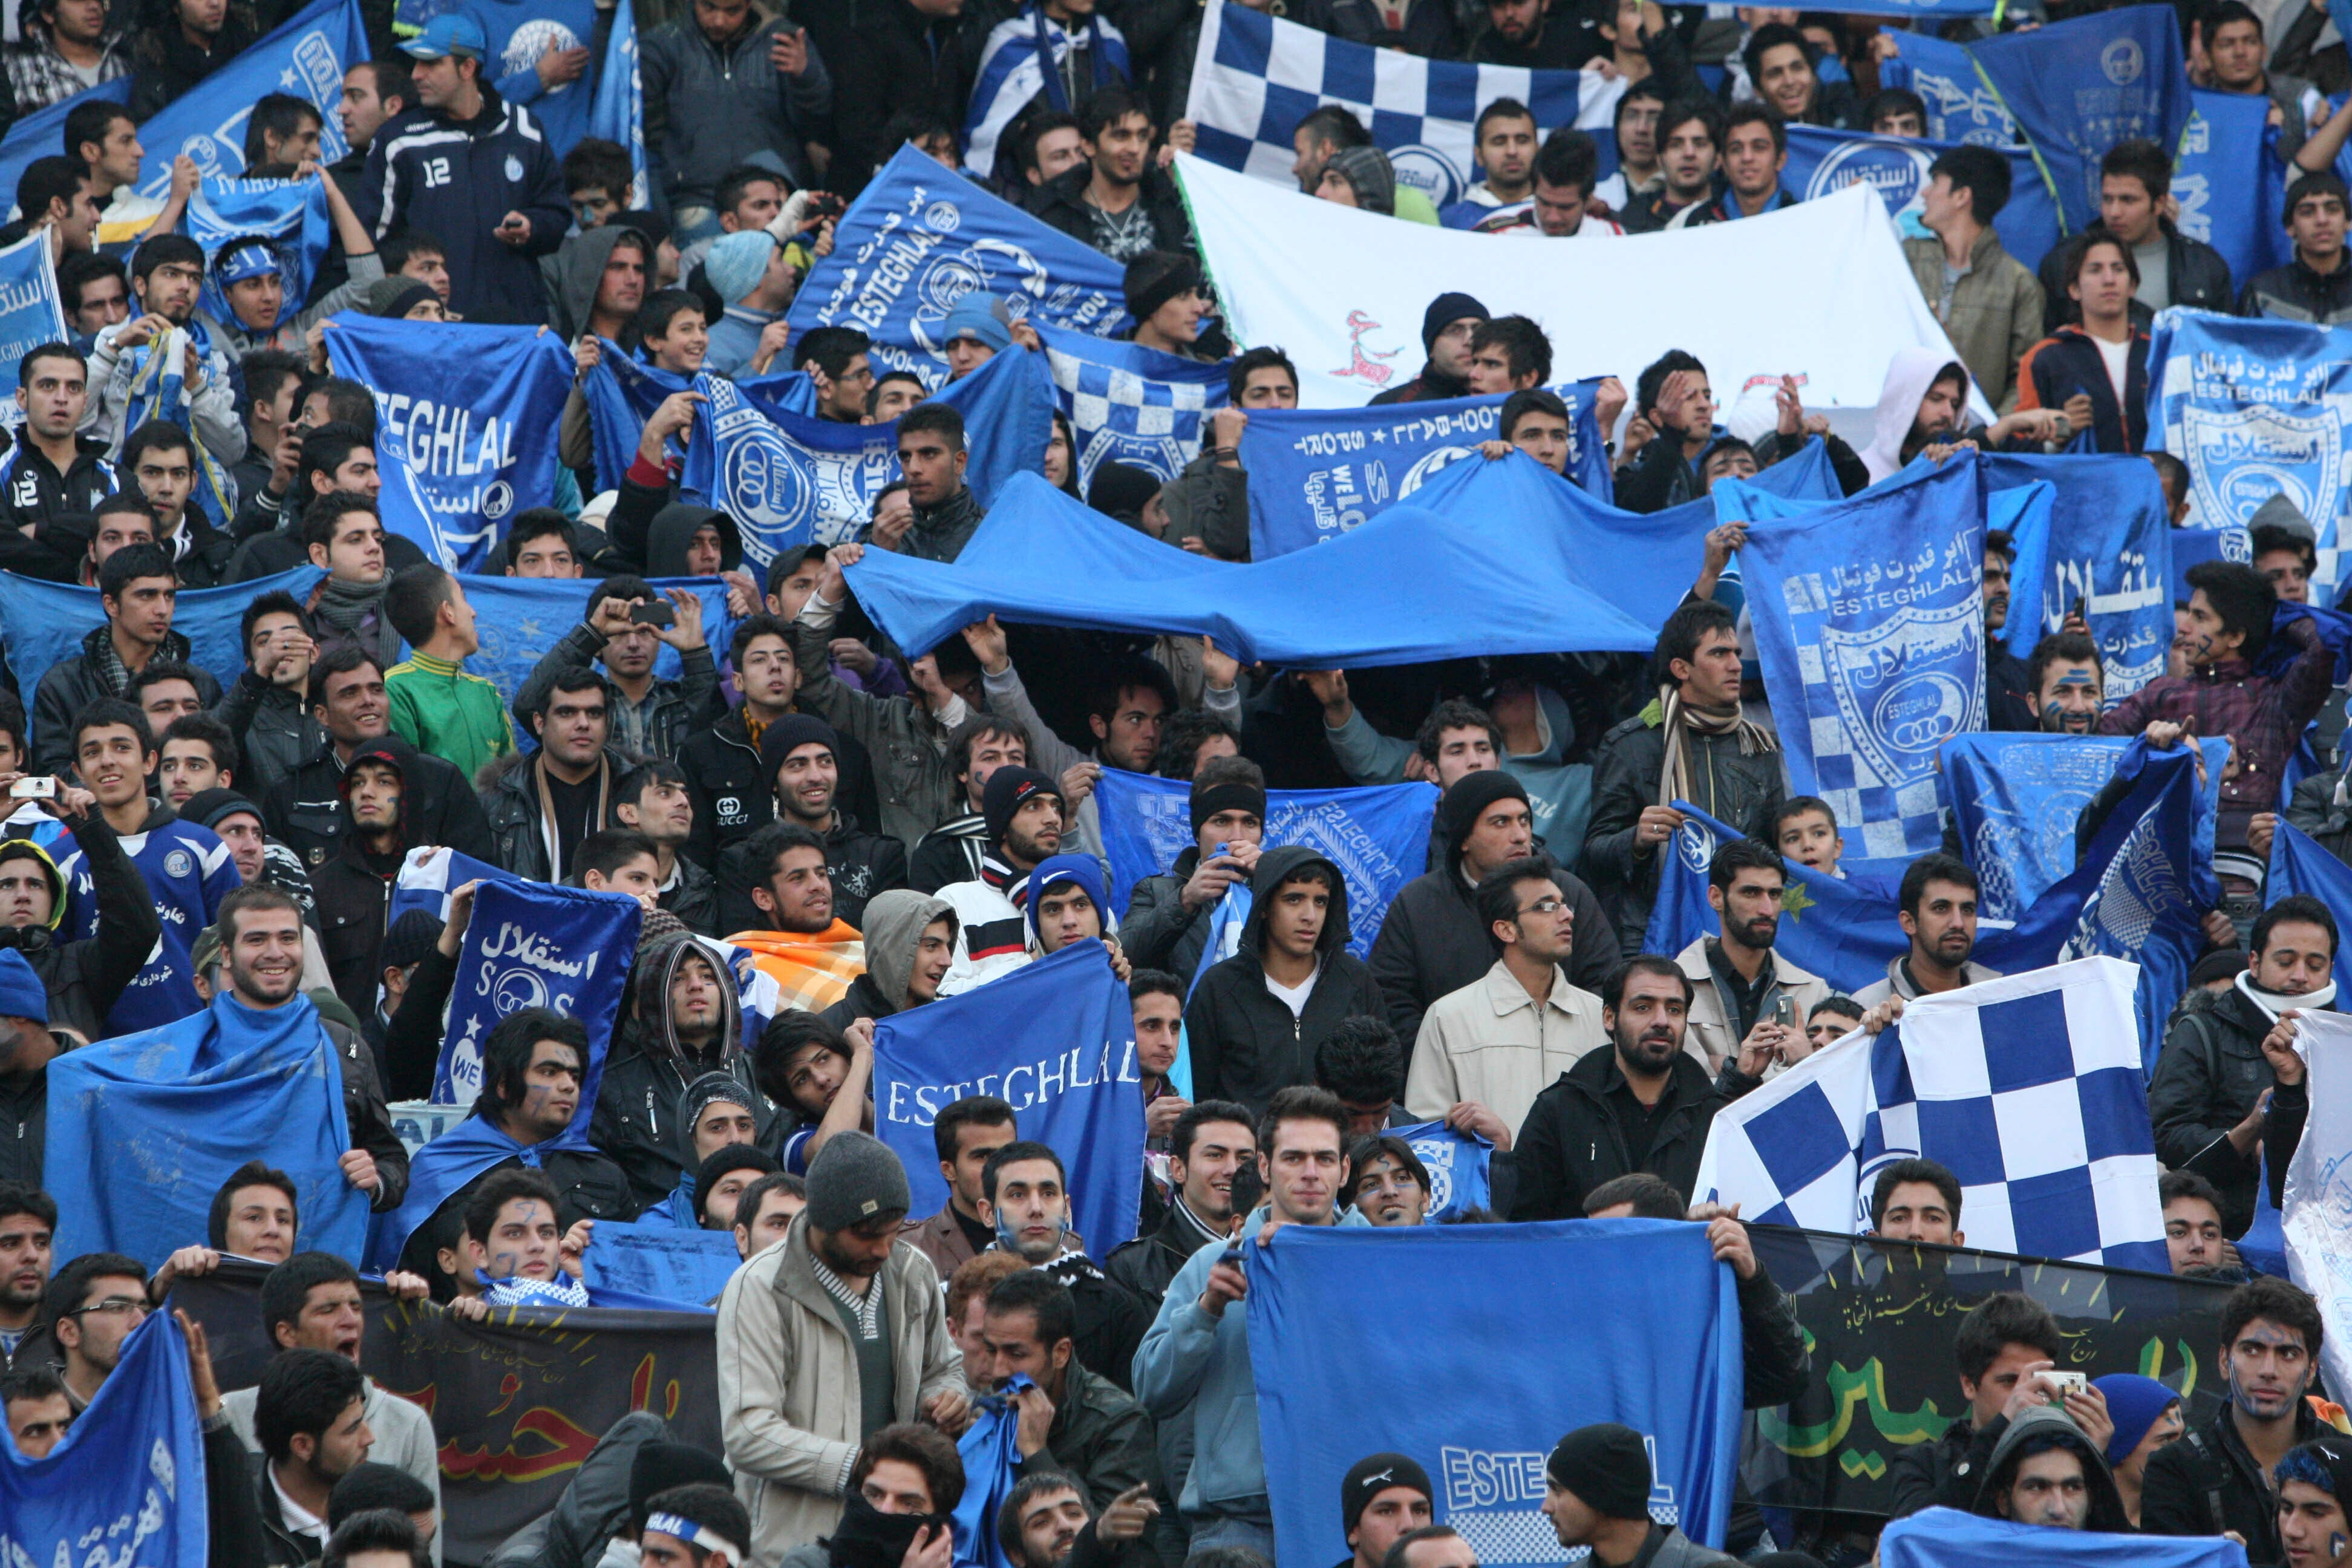 Female fan caught sneaking into Iranian soccer match, dies after setting herself on fire